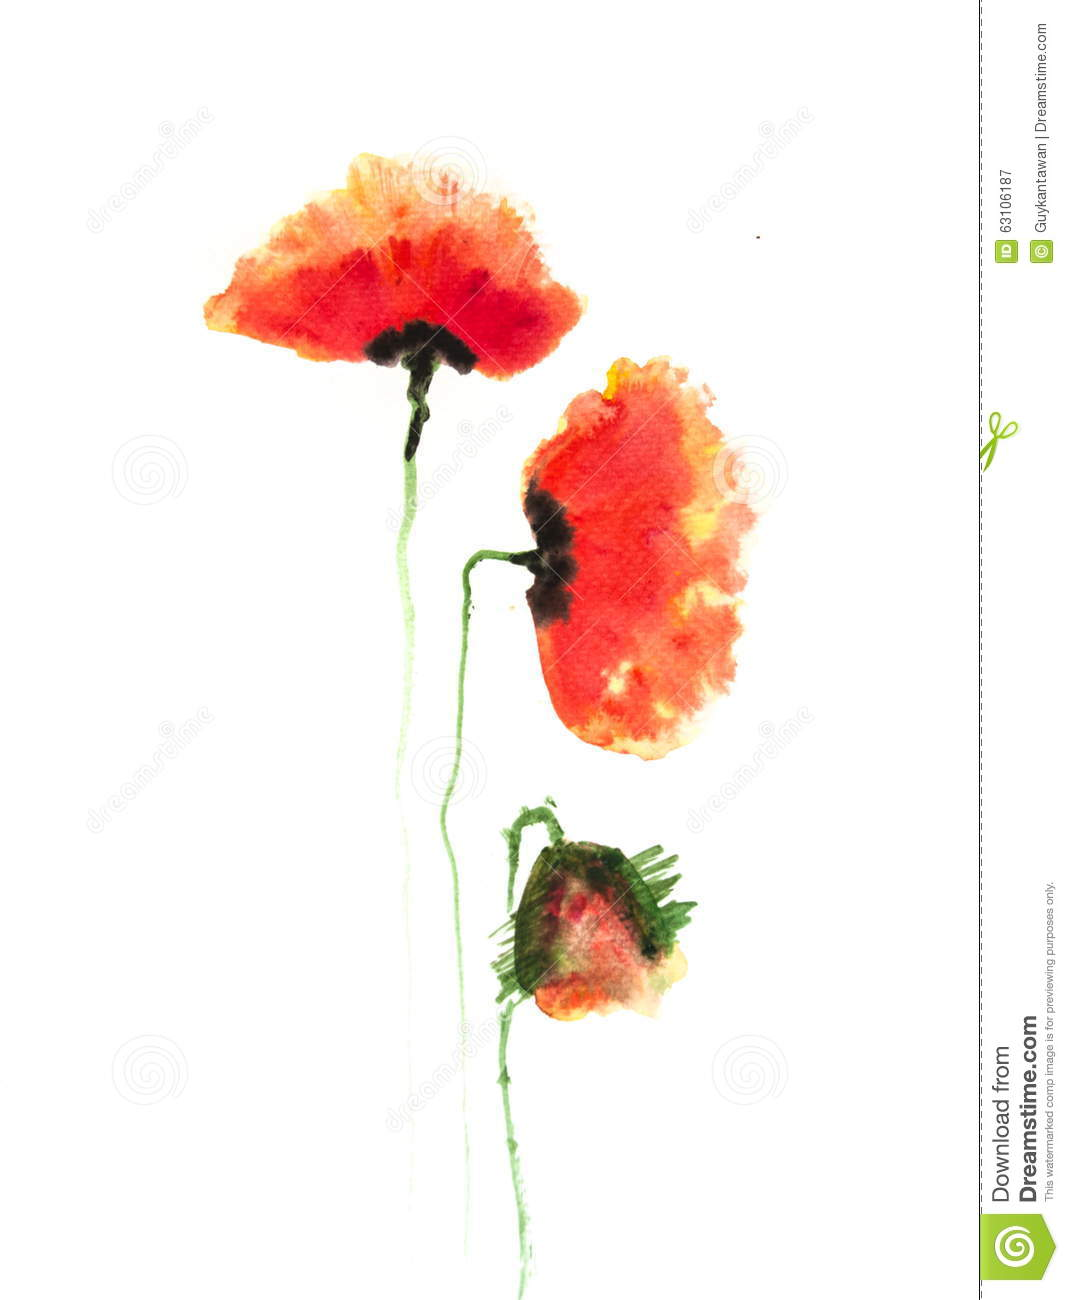 Red Poppy Flowers Acrylic Color Painting Illustration 63106187